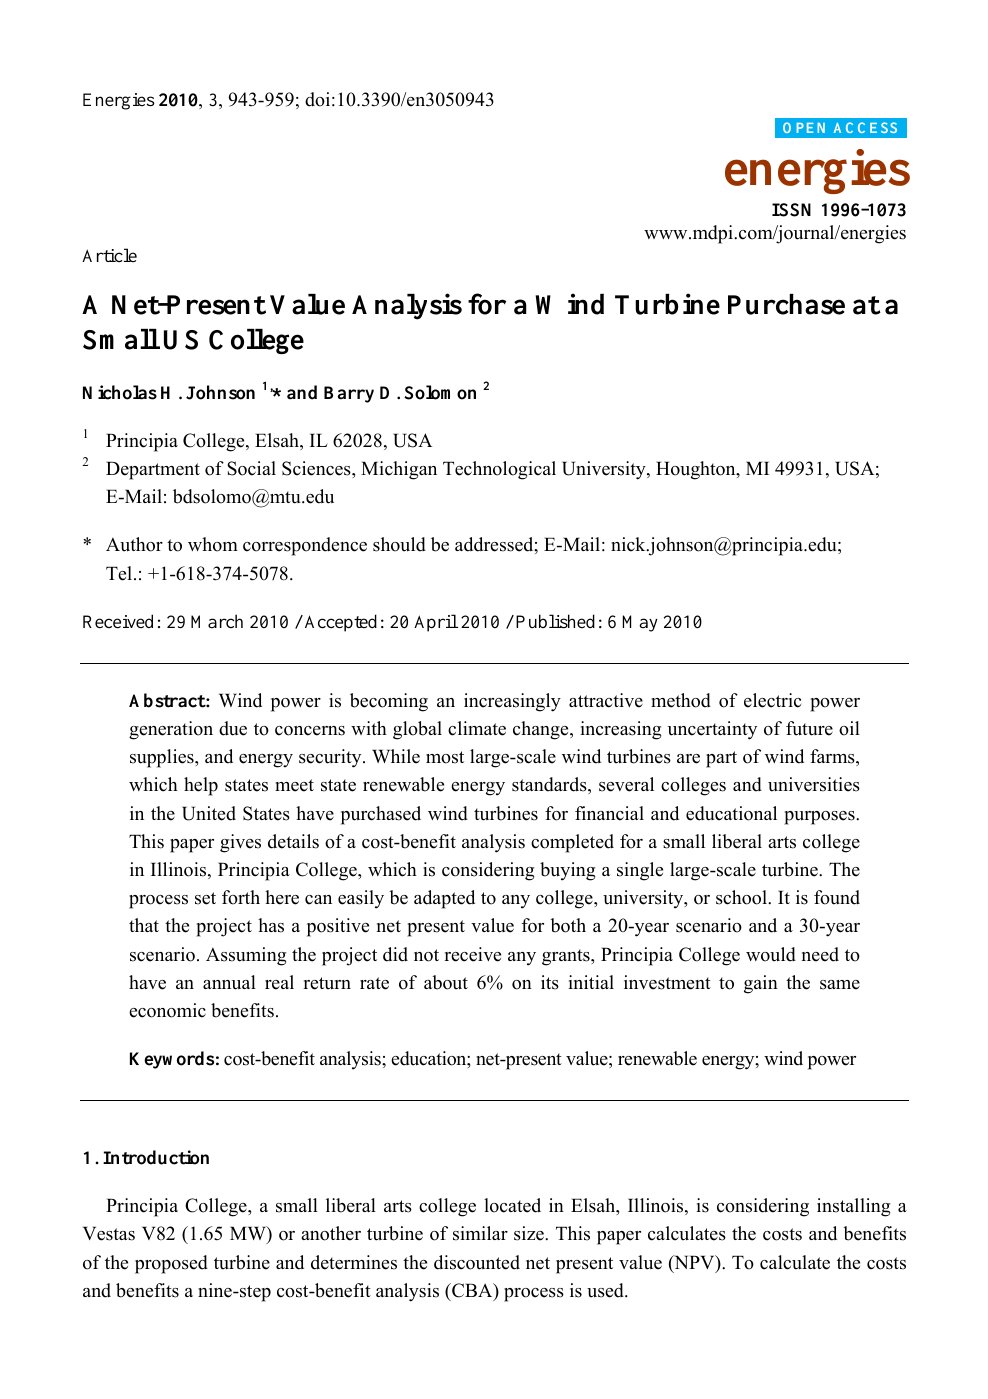 A Net-Present Value Analysis for a Wind Turbine Purchase at